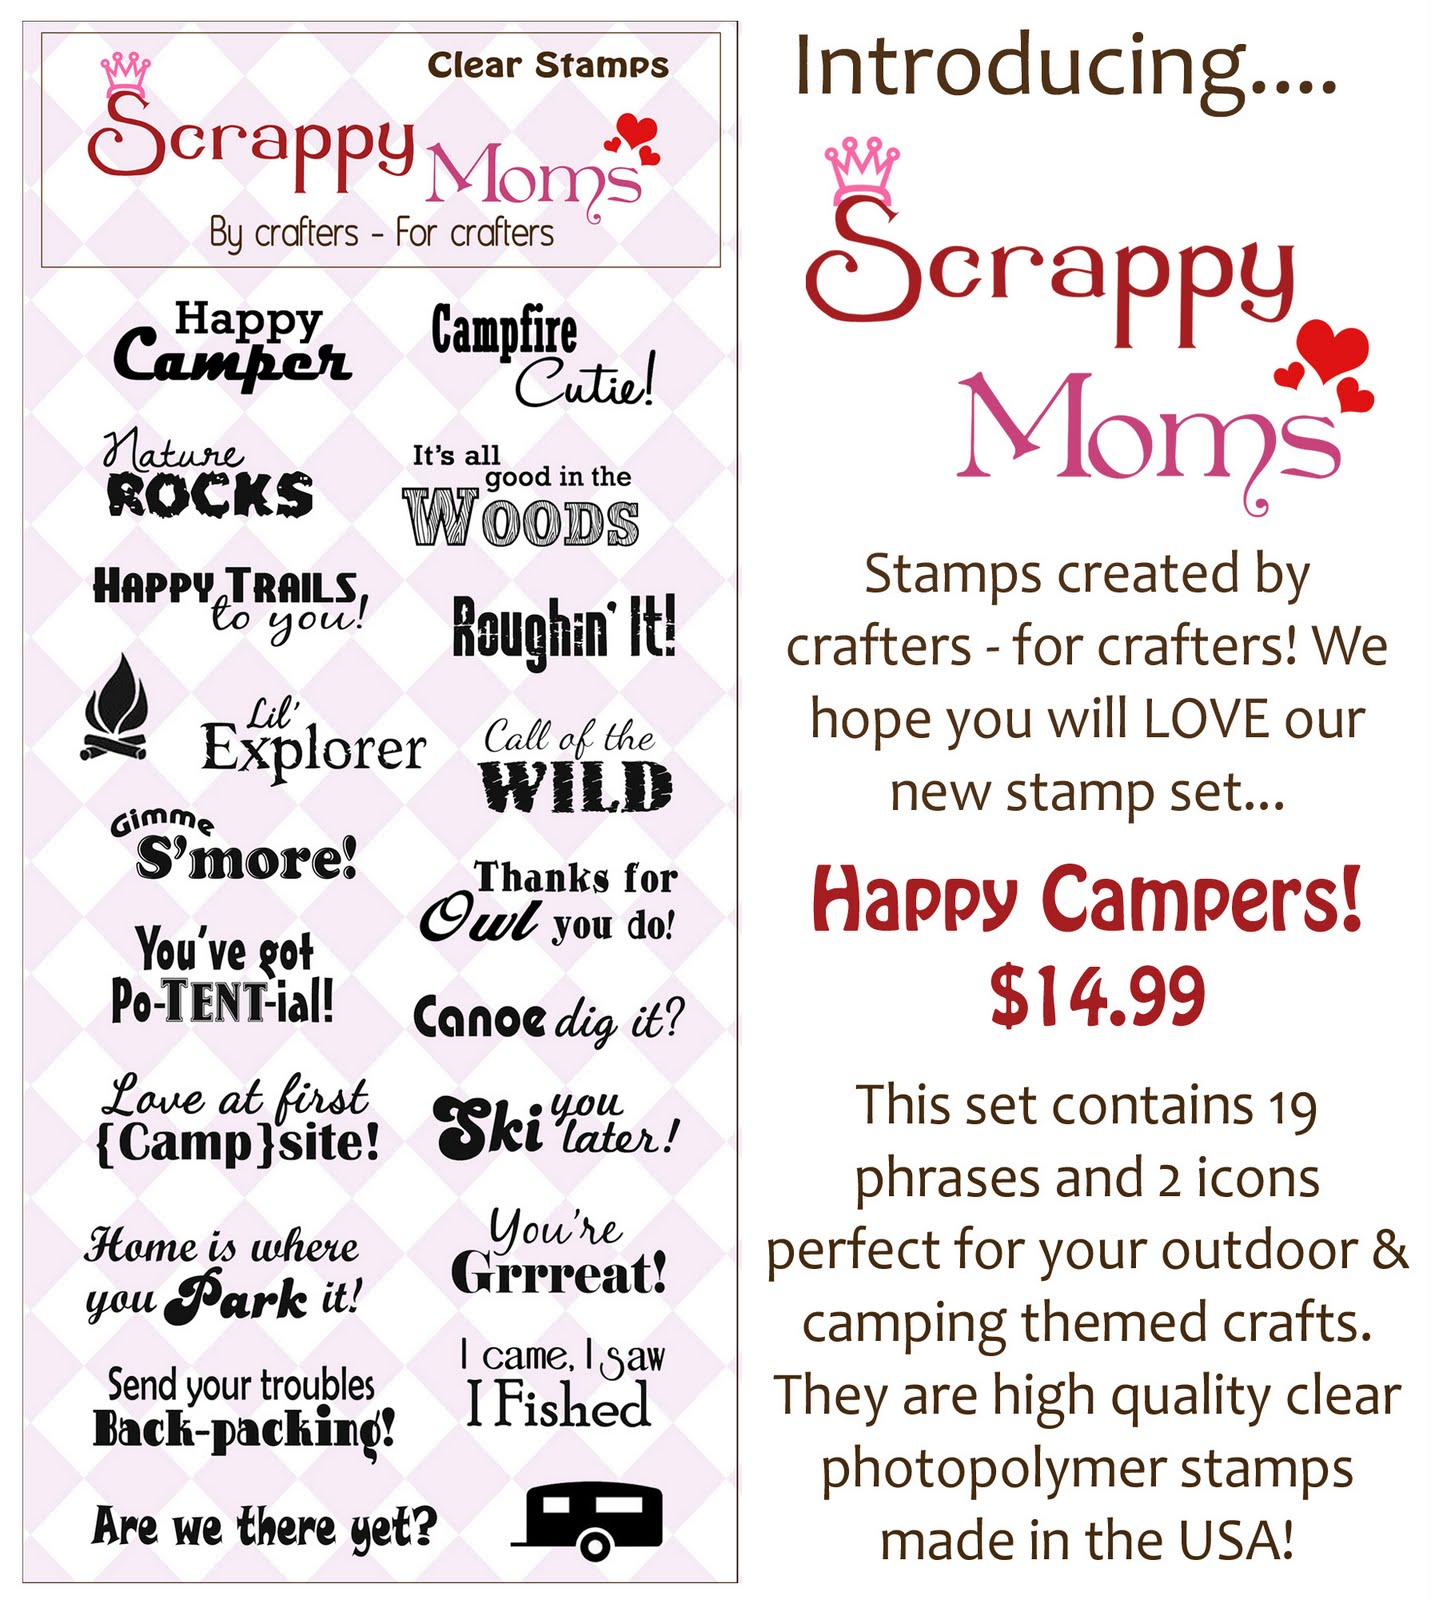 New Scrappy Moms Stamps Happy Friday